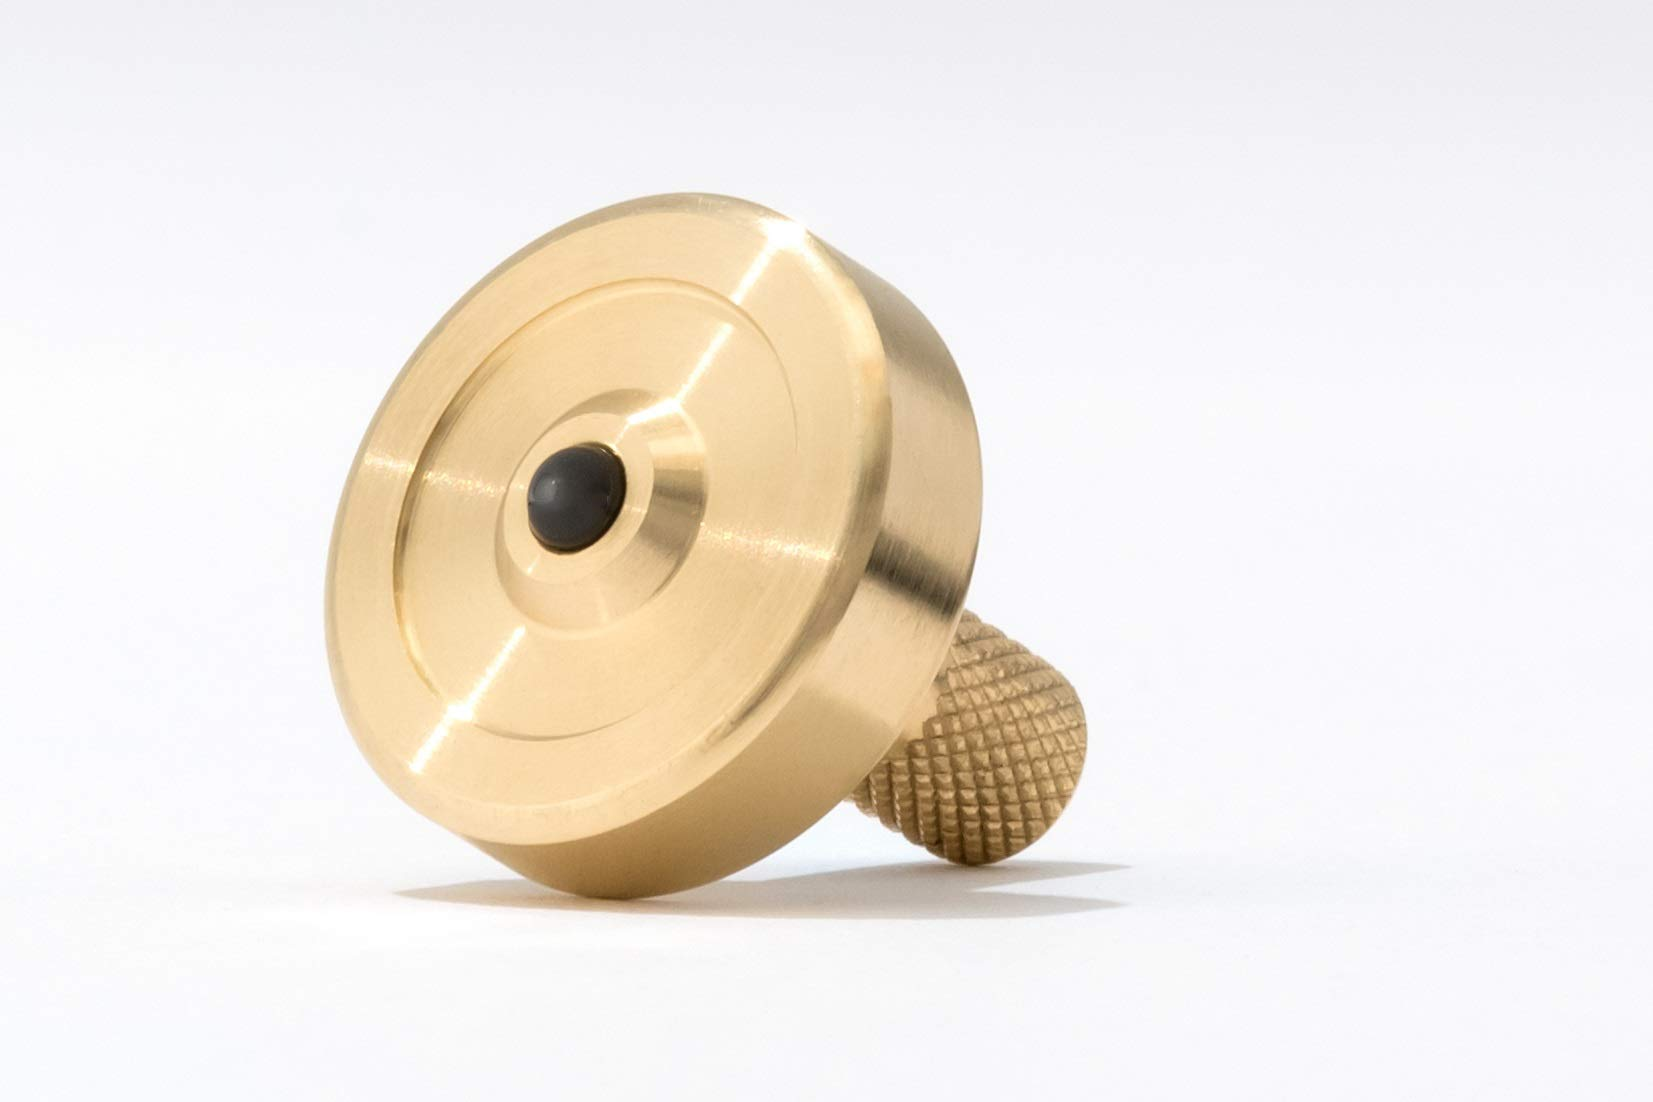 Bruce Charles Designs Schulte Brass Metal Spinning Top | EDC Desk Toys for Office for Adults and Kids | Unique Gift by Bruce Charles Designs (Image #3)